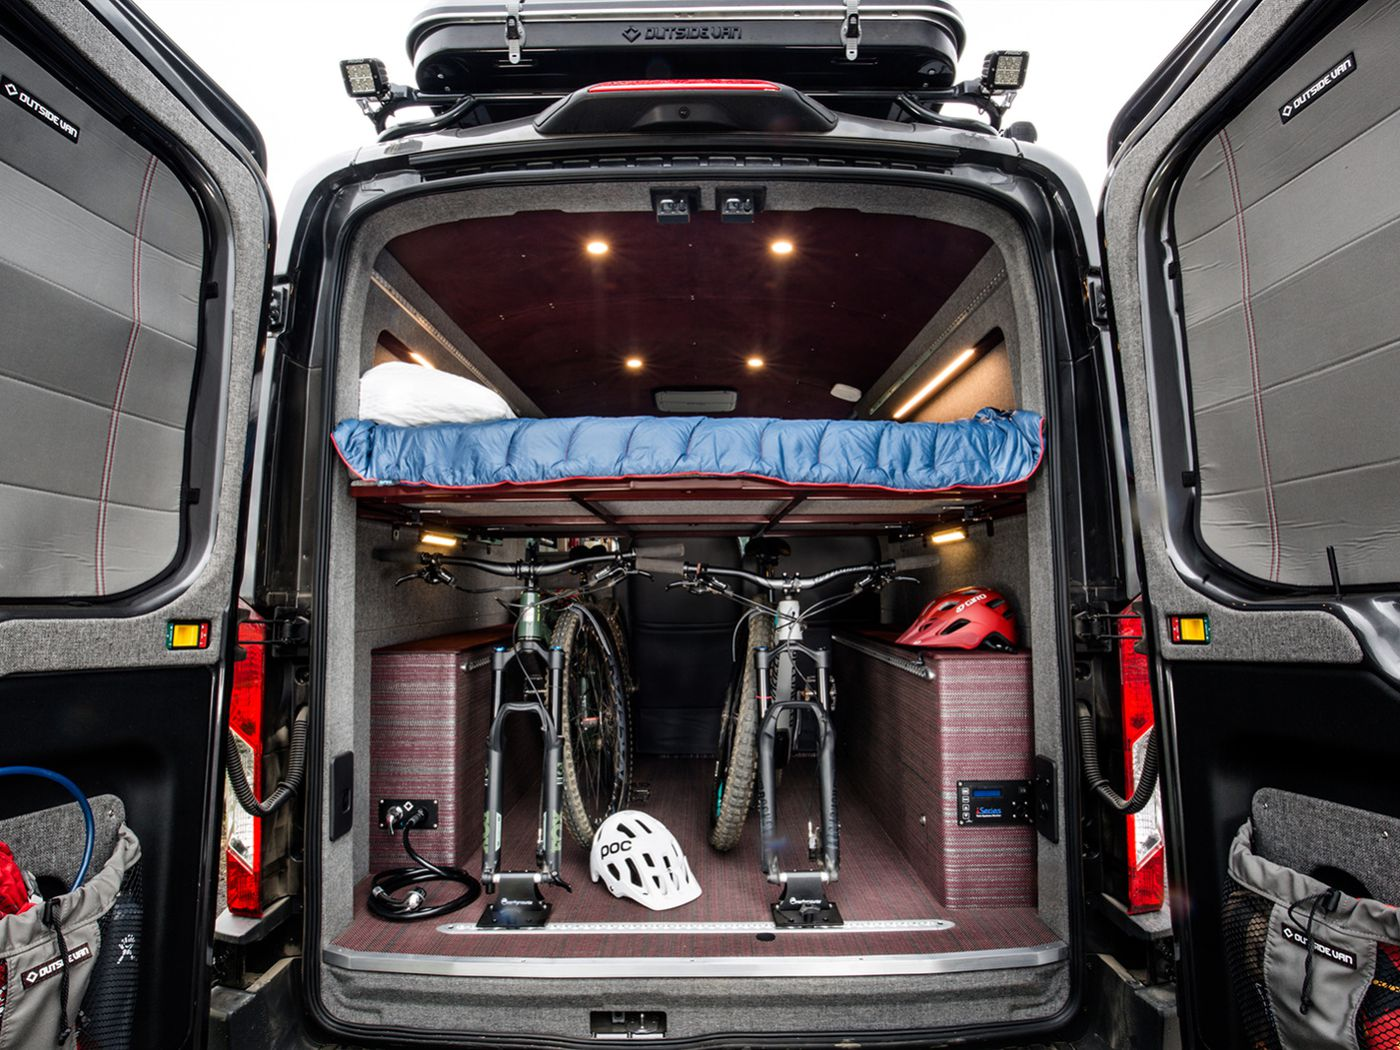 Ford Transit Camper Van Sleeps Four In Style Curbed